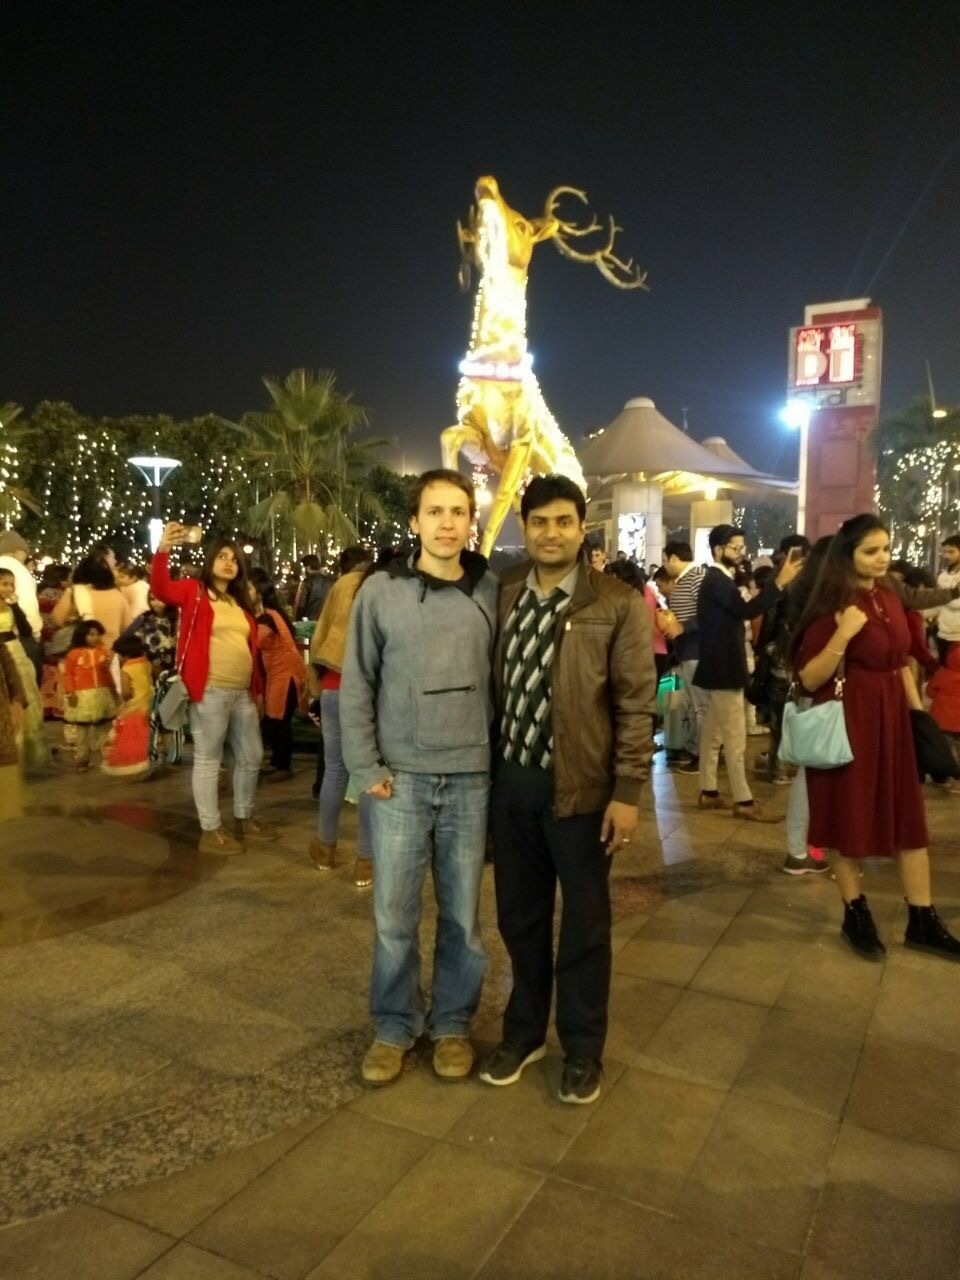 Markus Lohmayer and Prof. Dr. Ajeet Kumar posing for a photo at an open-air event at night in front of a large illuminated deer statue.